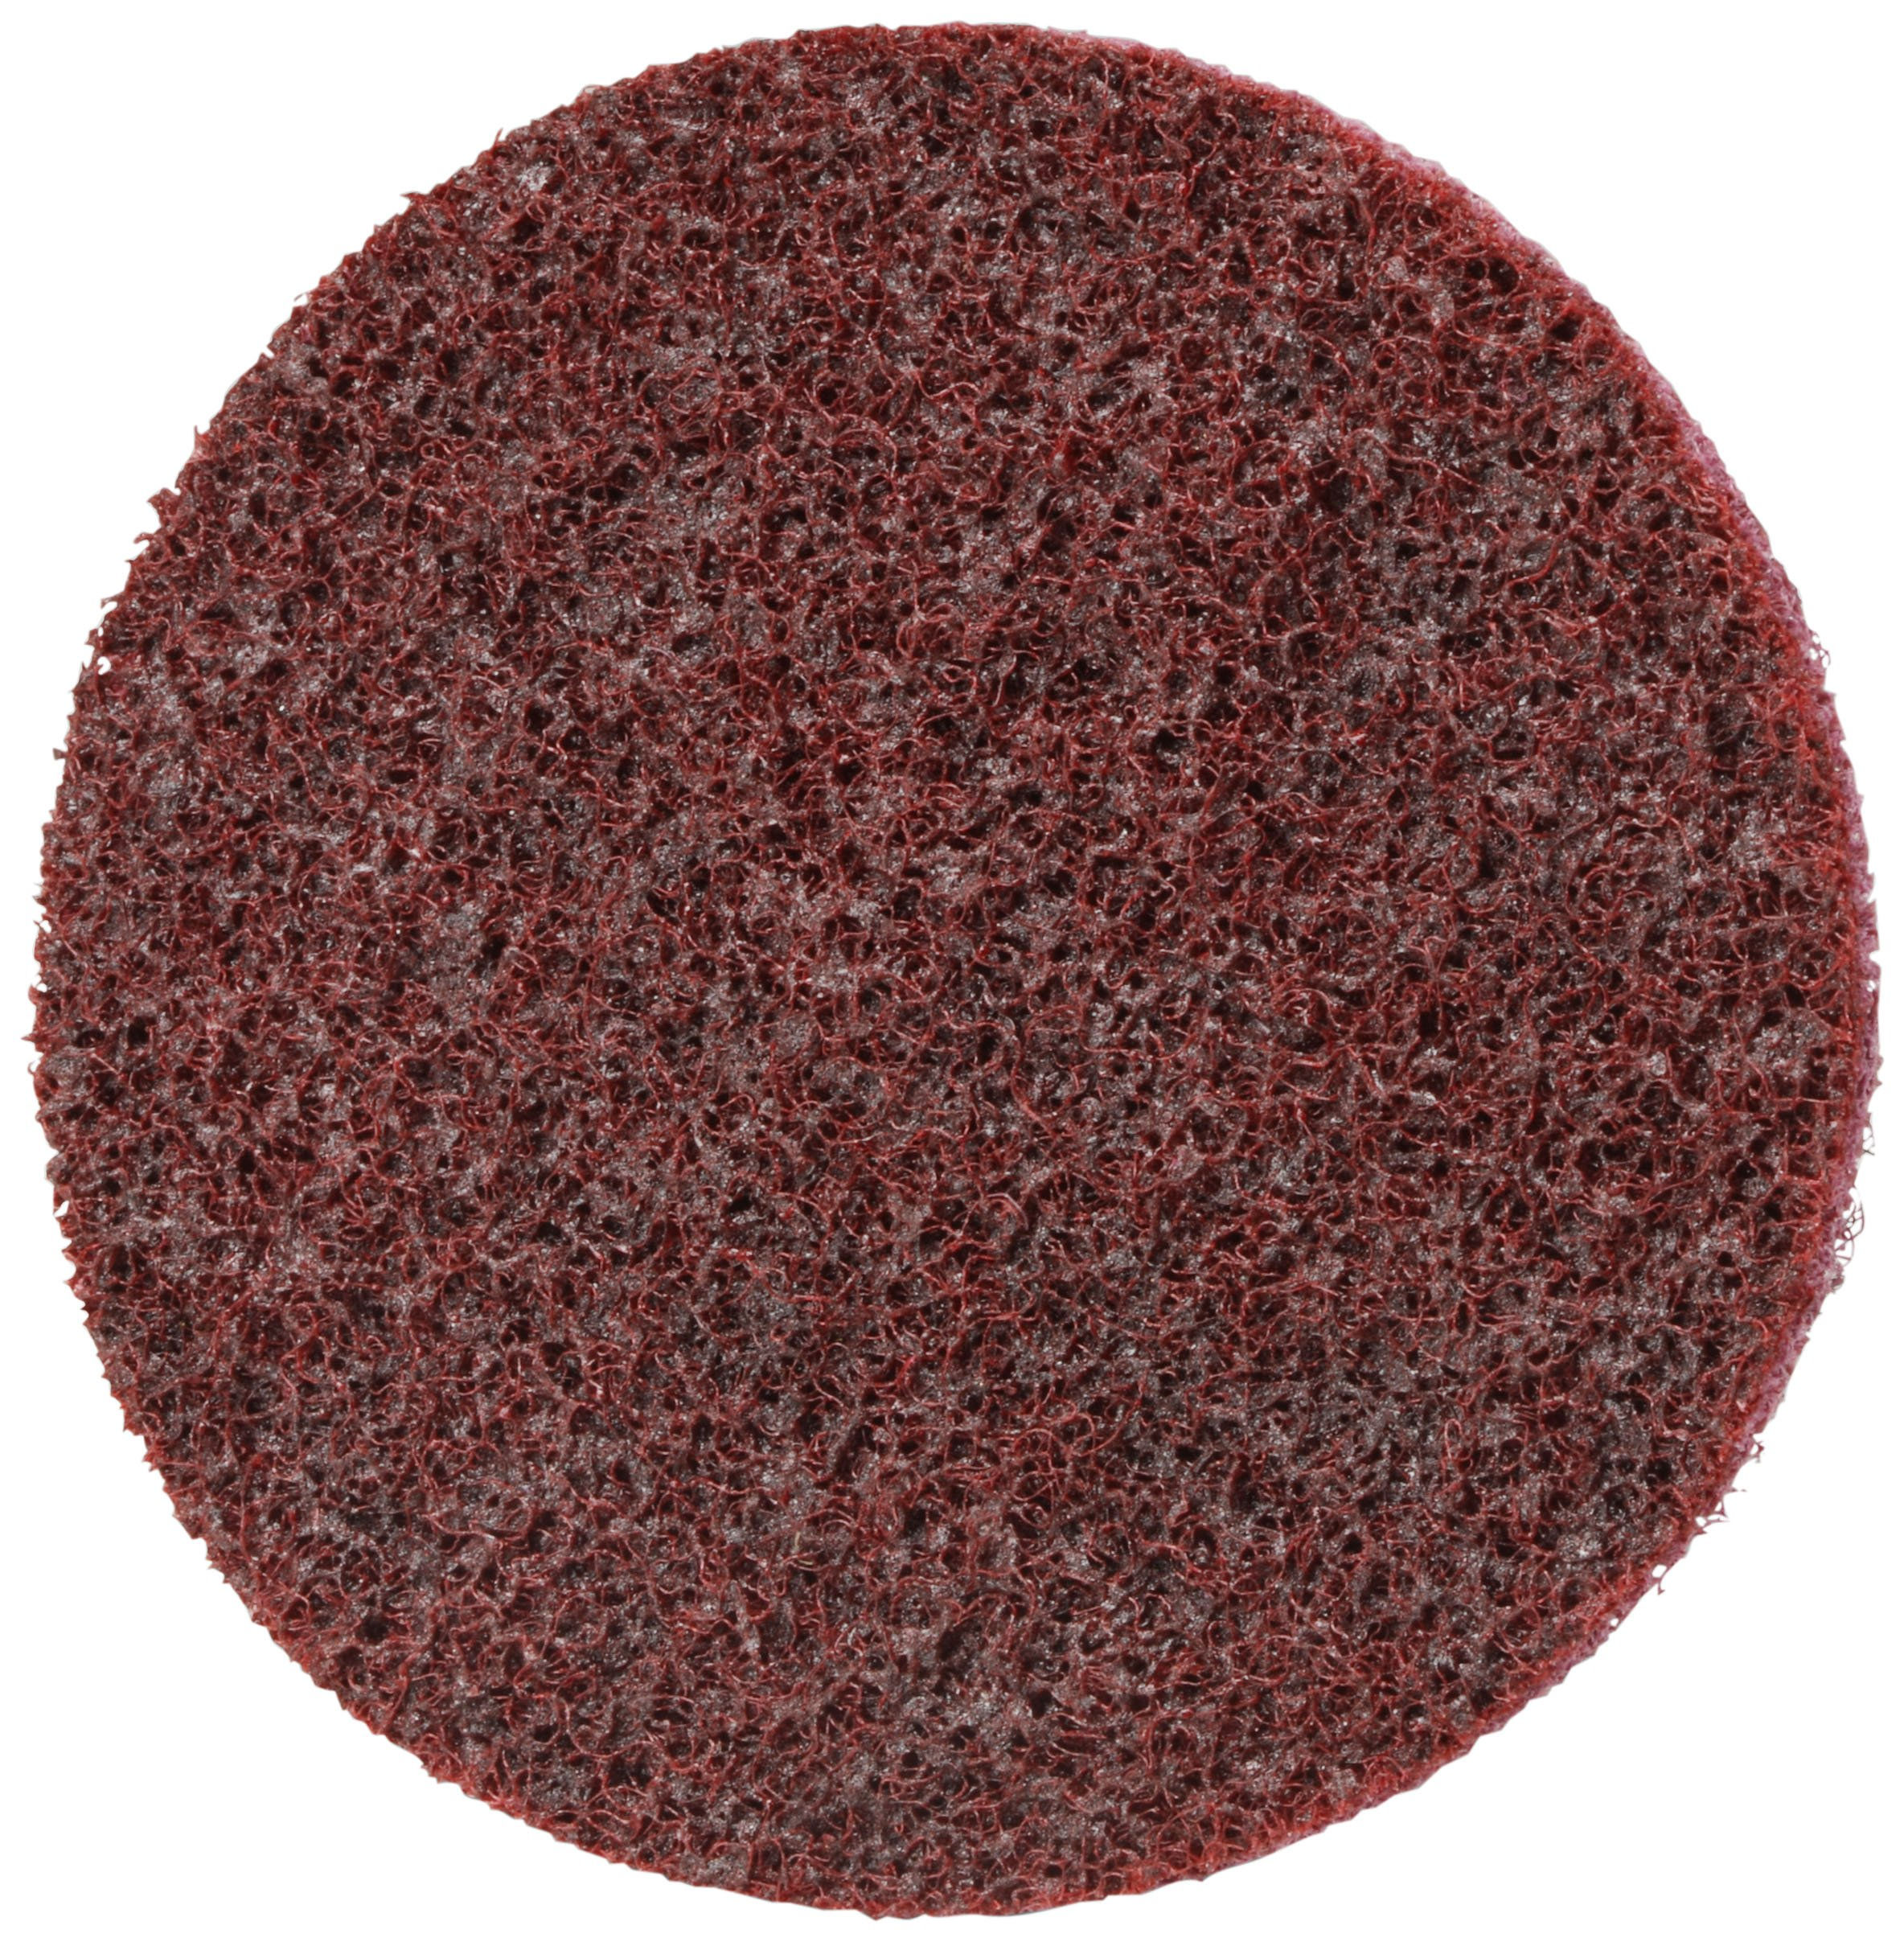 Scotch-Brite(TM) SL Surface Conditioning Disc, Hook and Loop Attachment, Aluminum Oxide, 7 Diameter, A Medium Grit (Pack of 25) by Cubitron